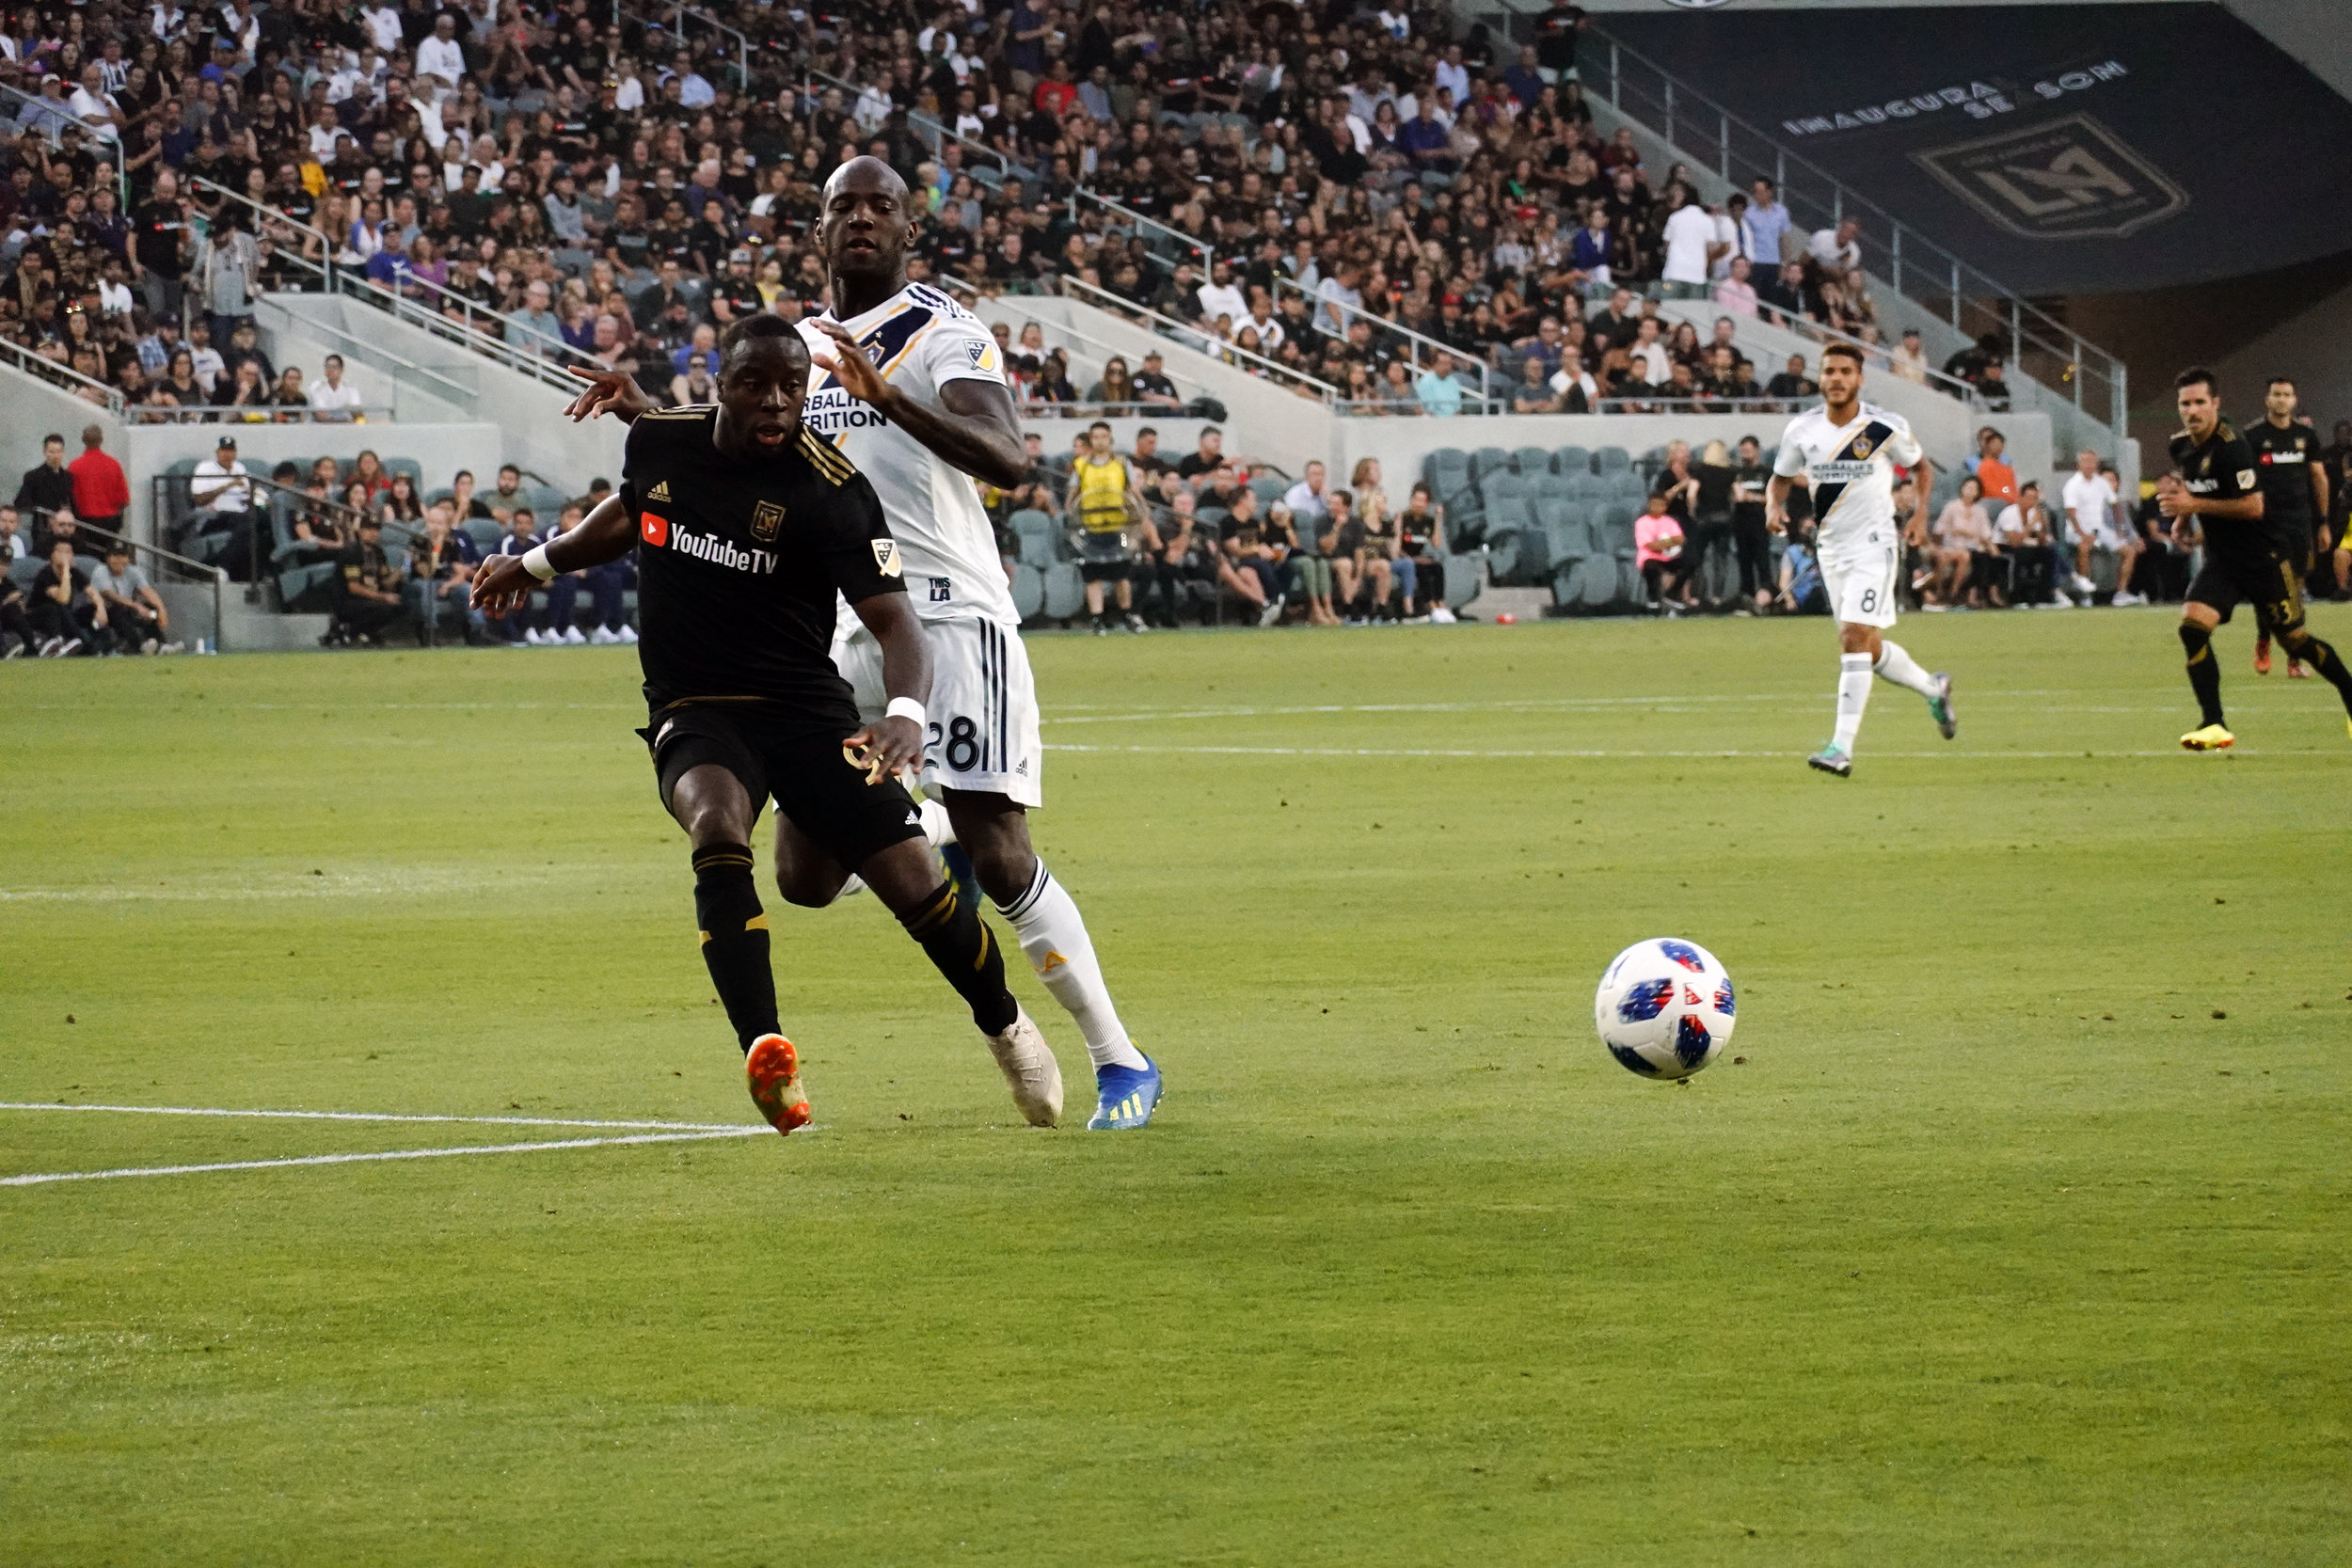 LAFCs Adama Diomande battles LA Galaxy defender, Michel Ciani for possession of the ball in the first LA Derby at Banc of California Stadium.